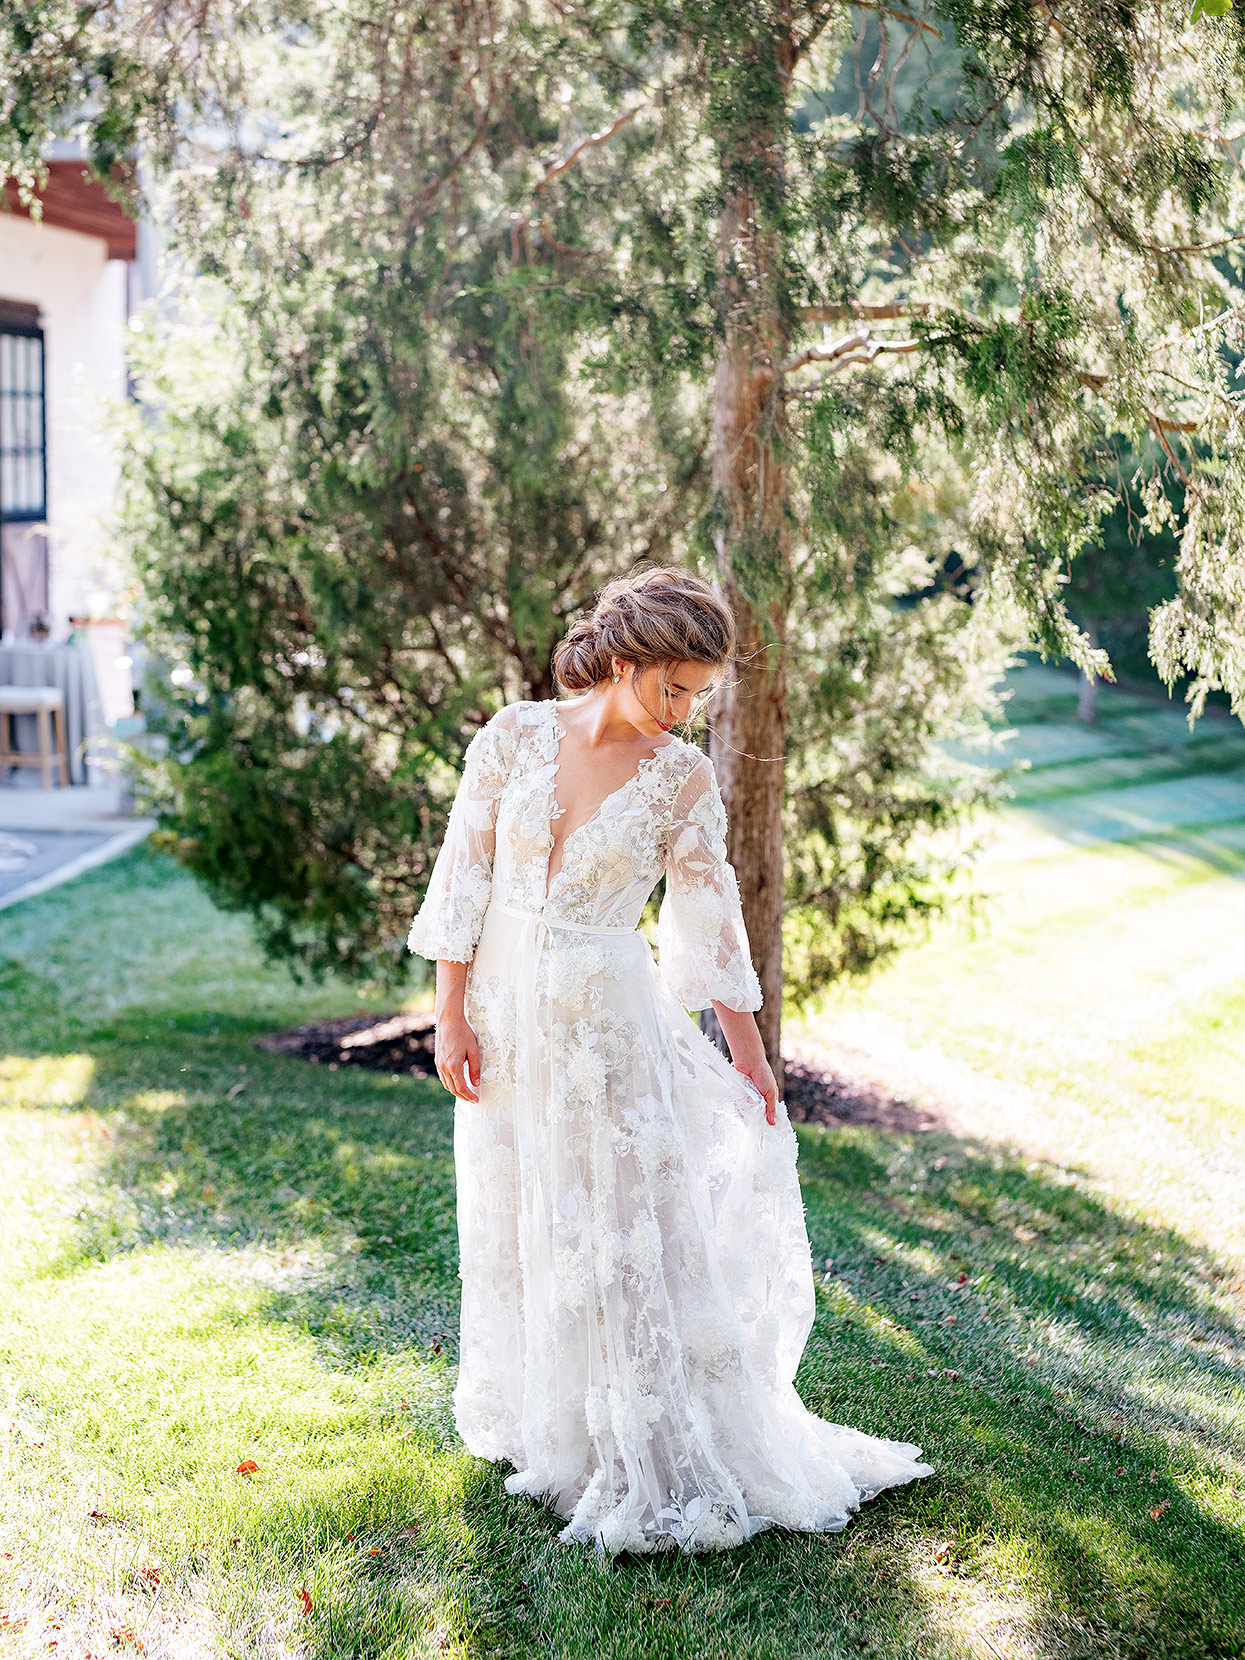 The bride Claire with lace v-neck romantic gown